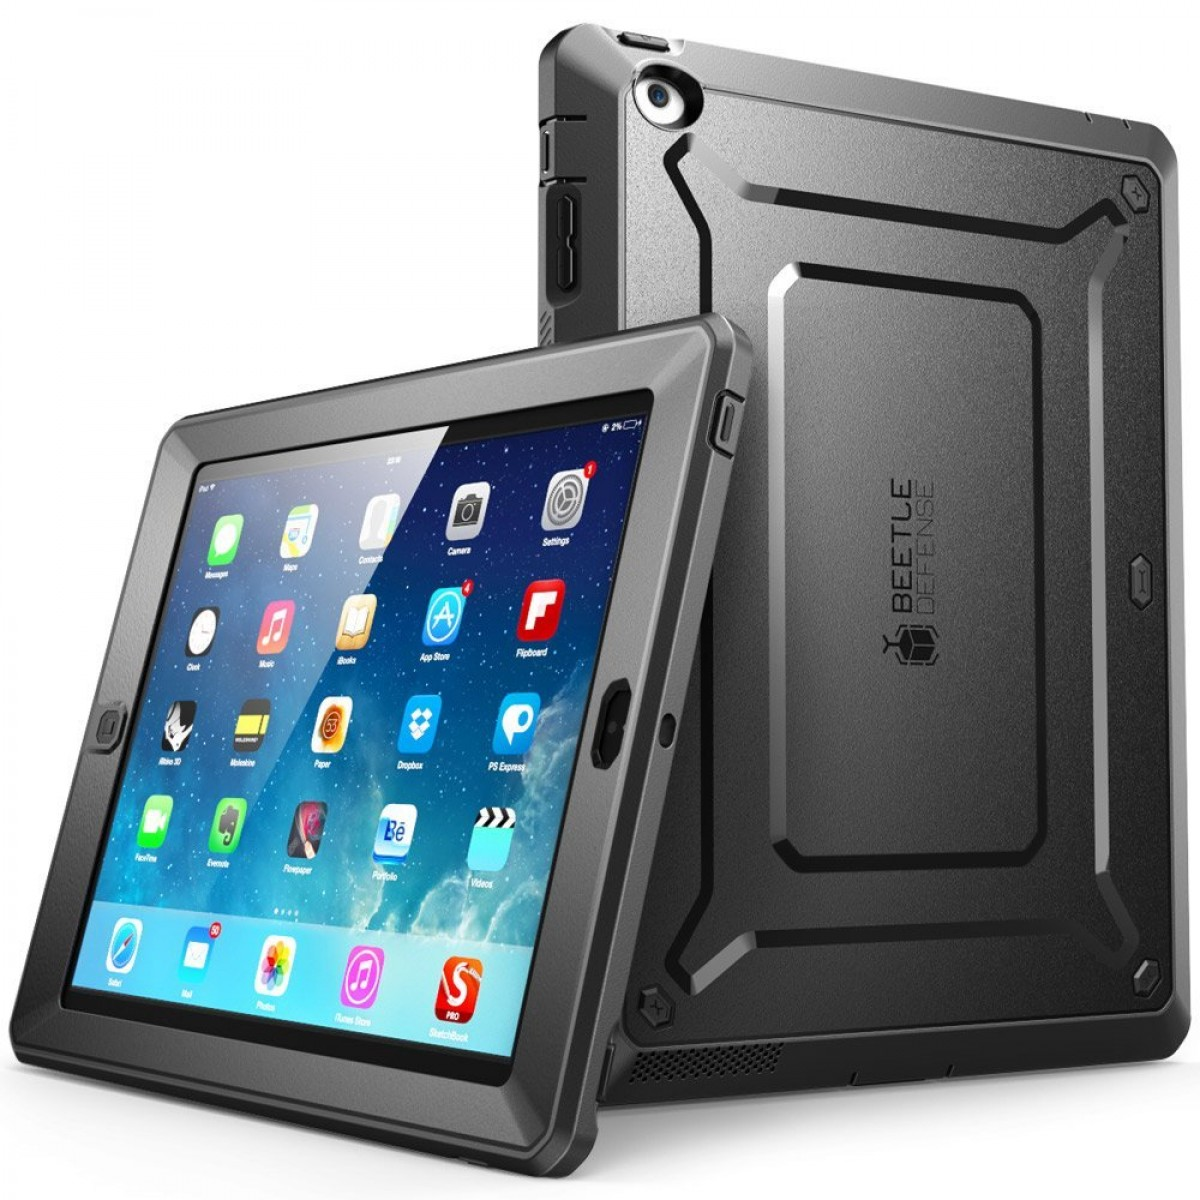 online store b9ab9 6ca80 iPad 4 Case, SUPCASE [Heavy Duty] Apple iPad Case [Unicorn Beetle PRO  Series] Full-body Rugged Hybrid Protective Case Cover with Built-in Screen  Prot